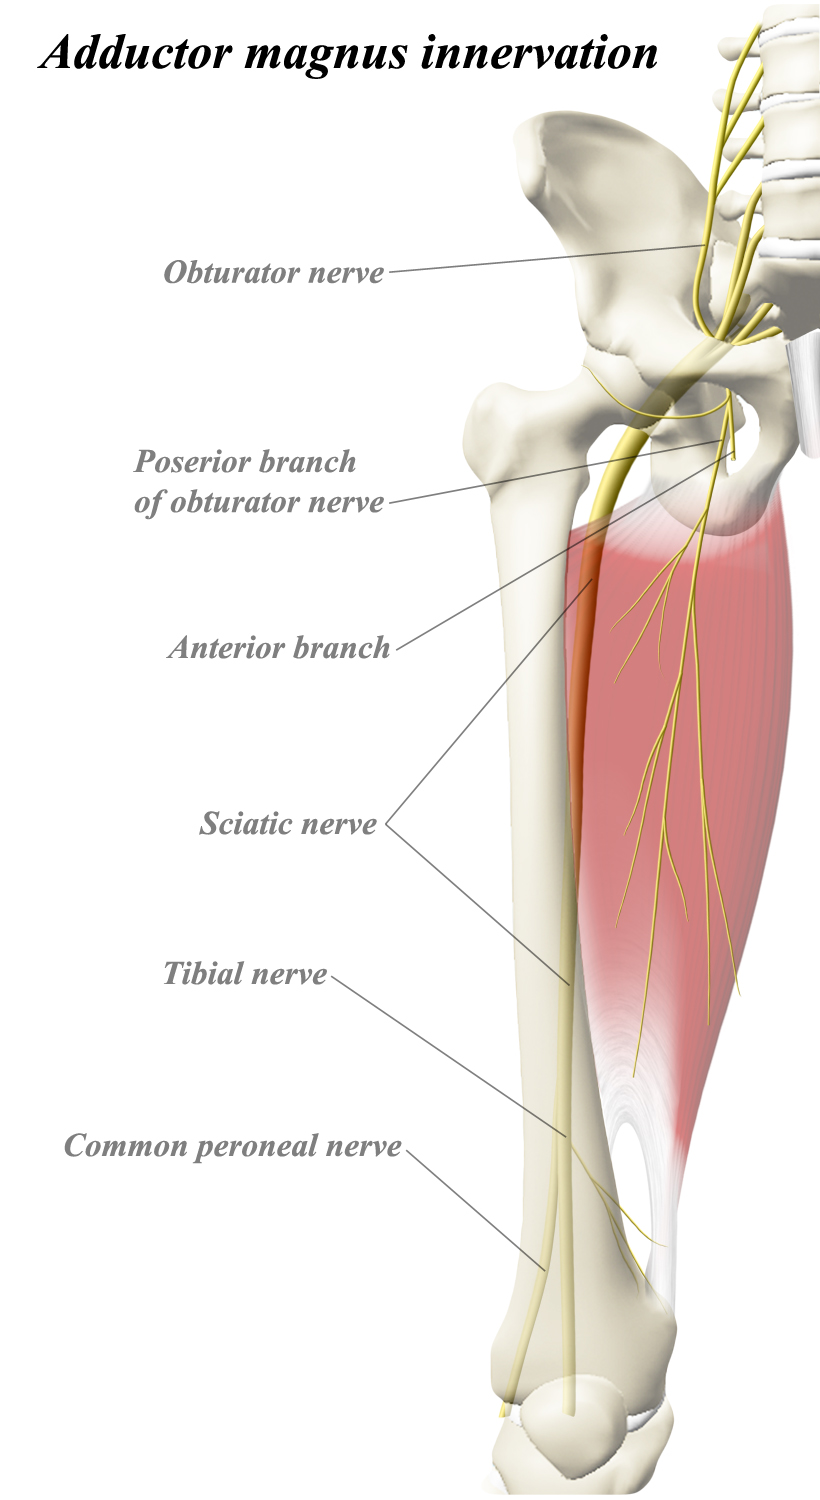 http://upload.orthobullets.com/topic/10067/images/adductor nerve1500.jpg